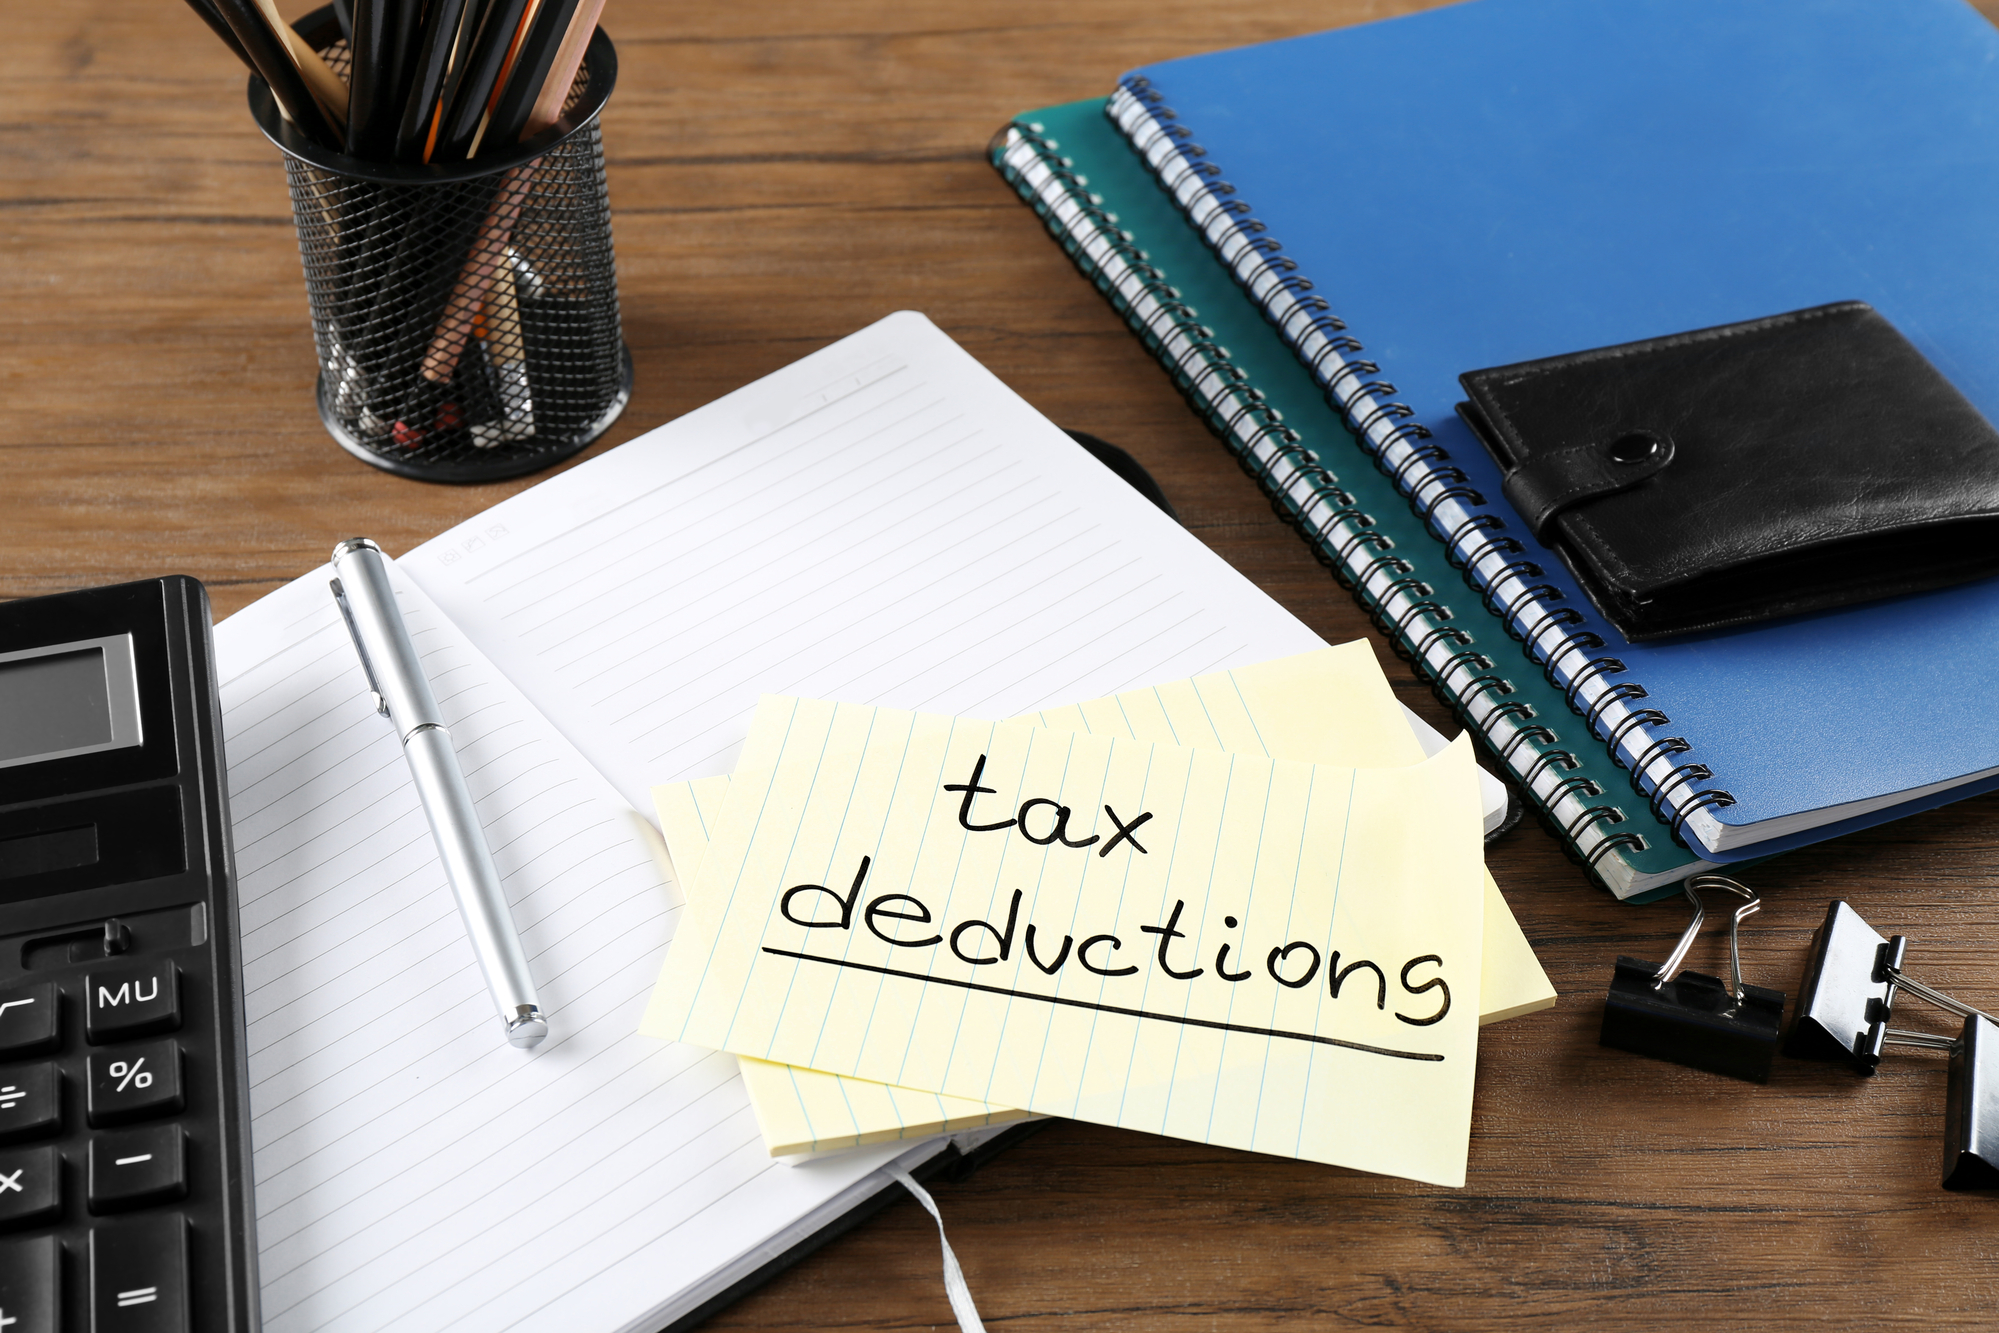 Paper sheet with text TAX DEDUCTIONS